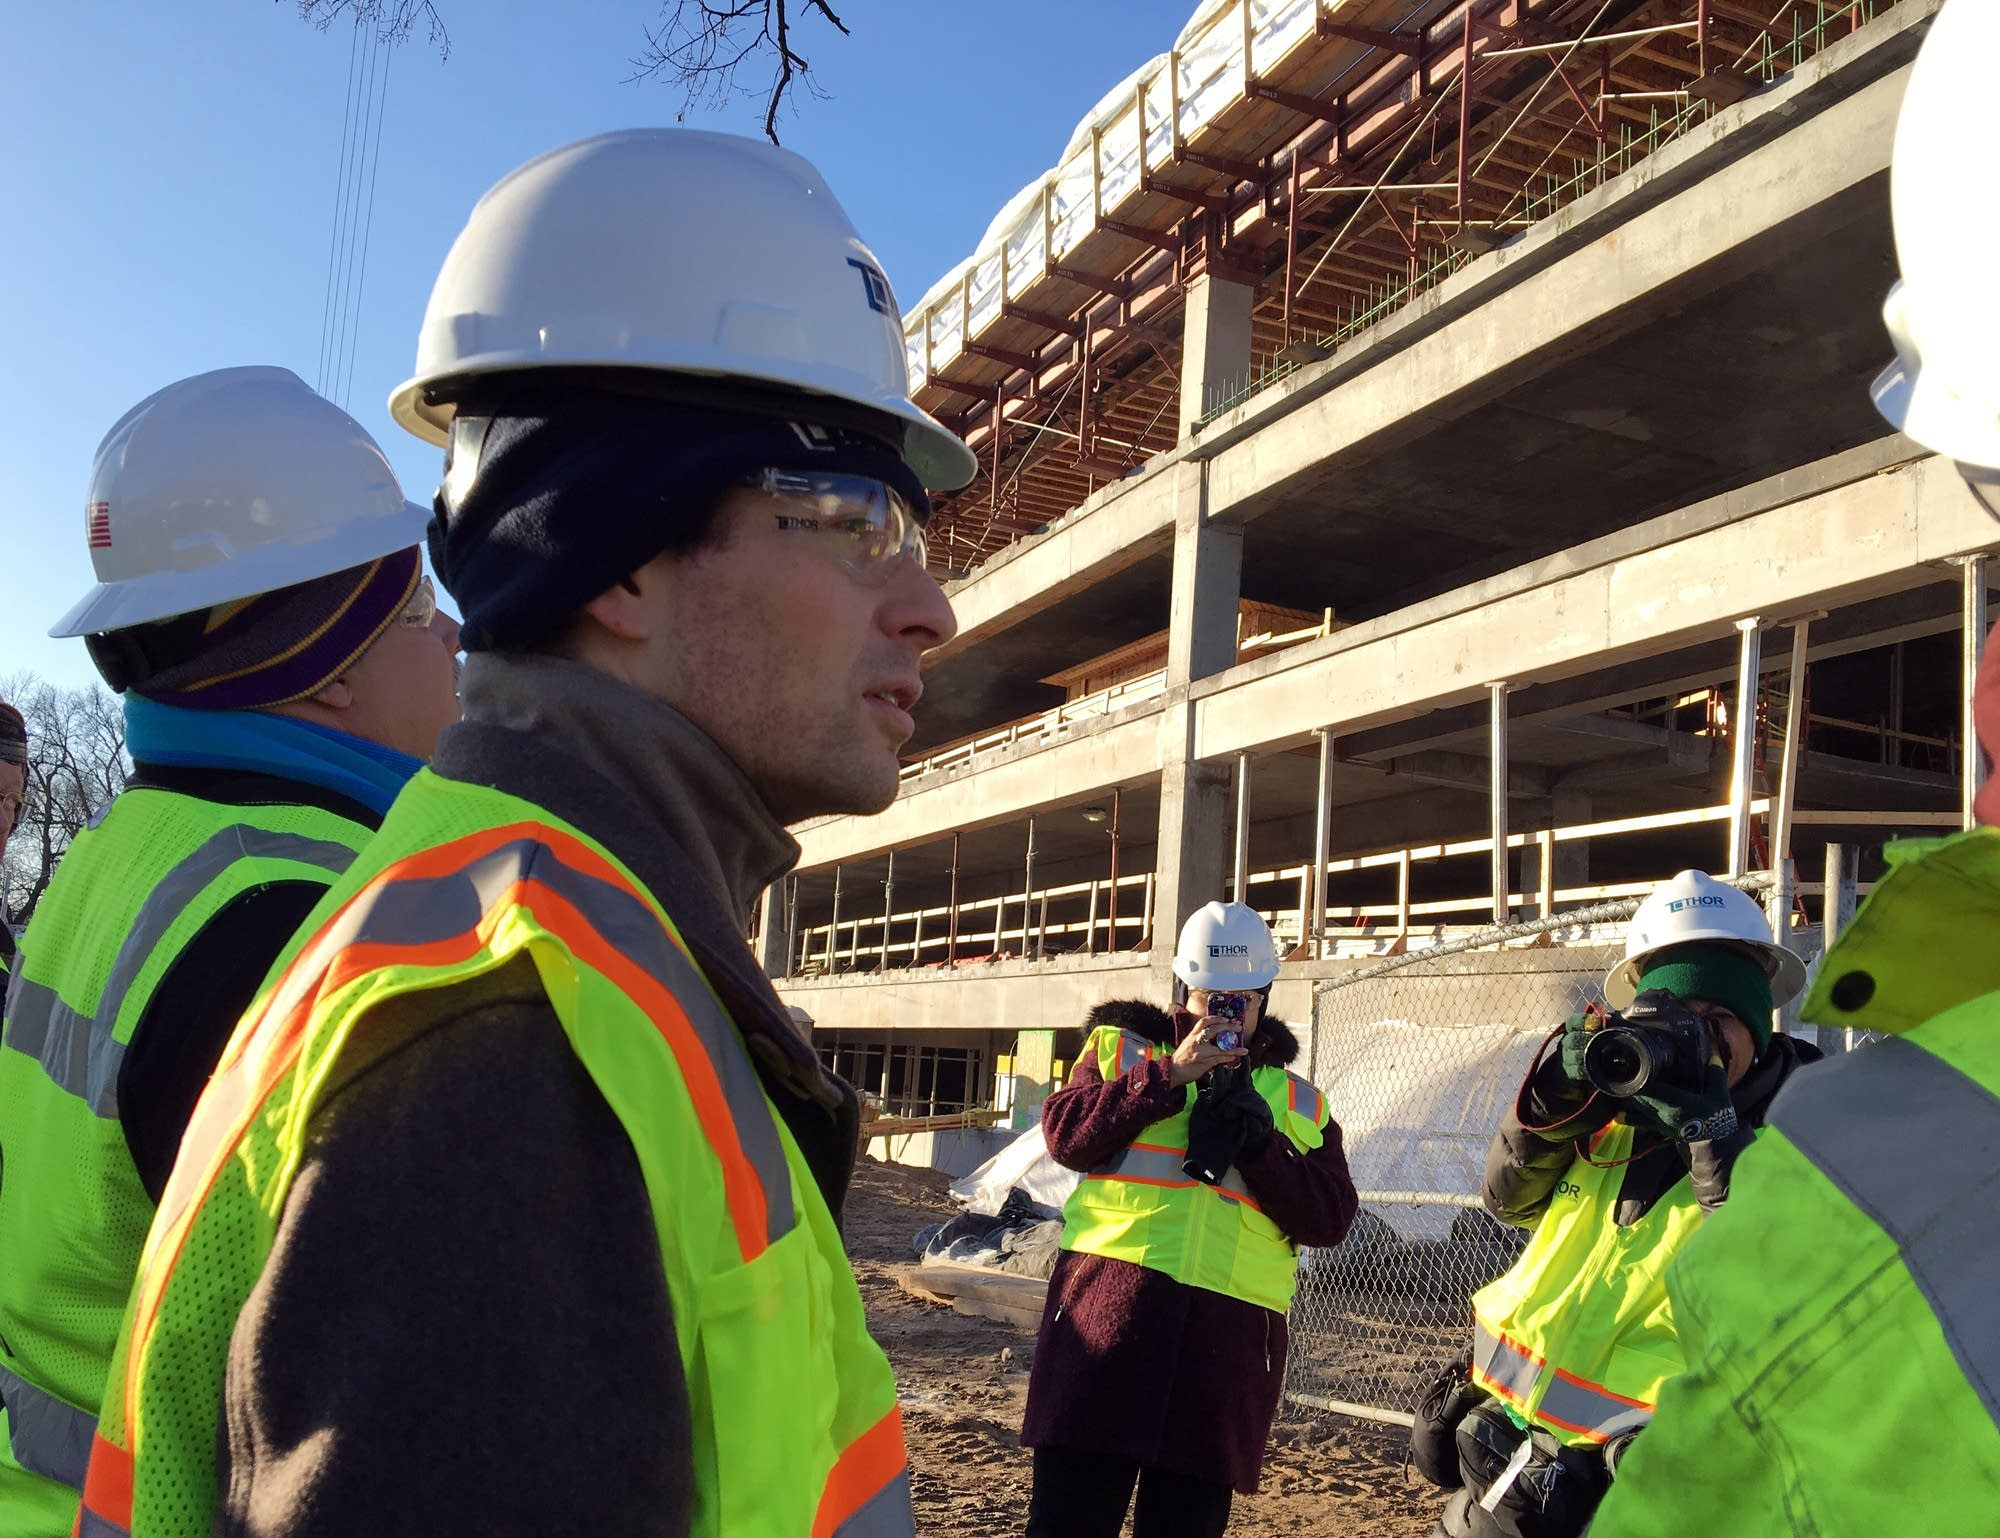 Mpls. mayor Jacob Frey gets a tour of the Thor construction hq project.